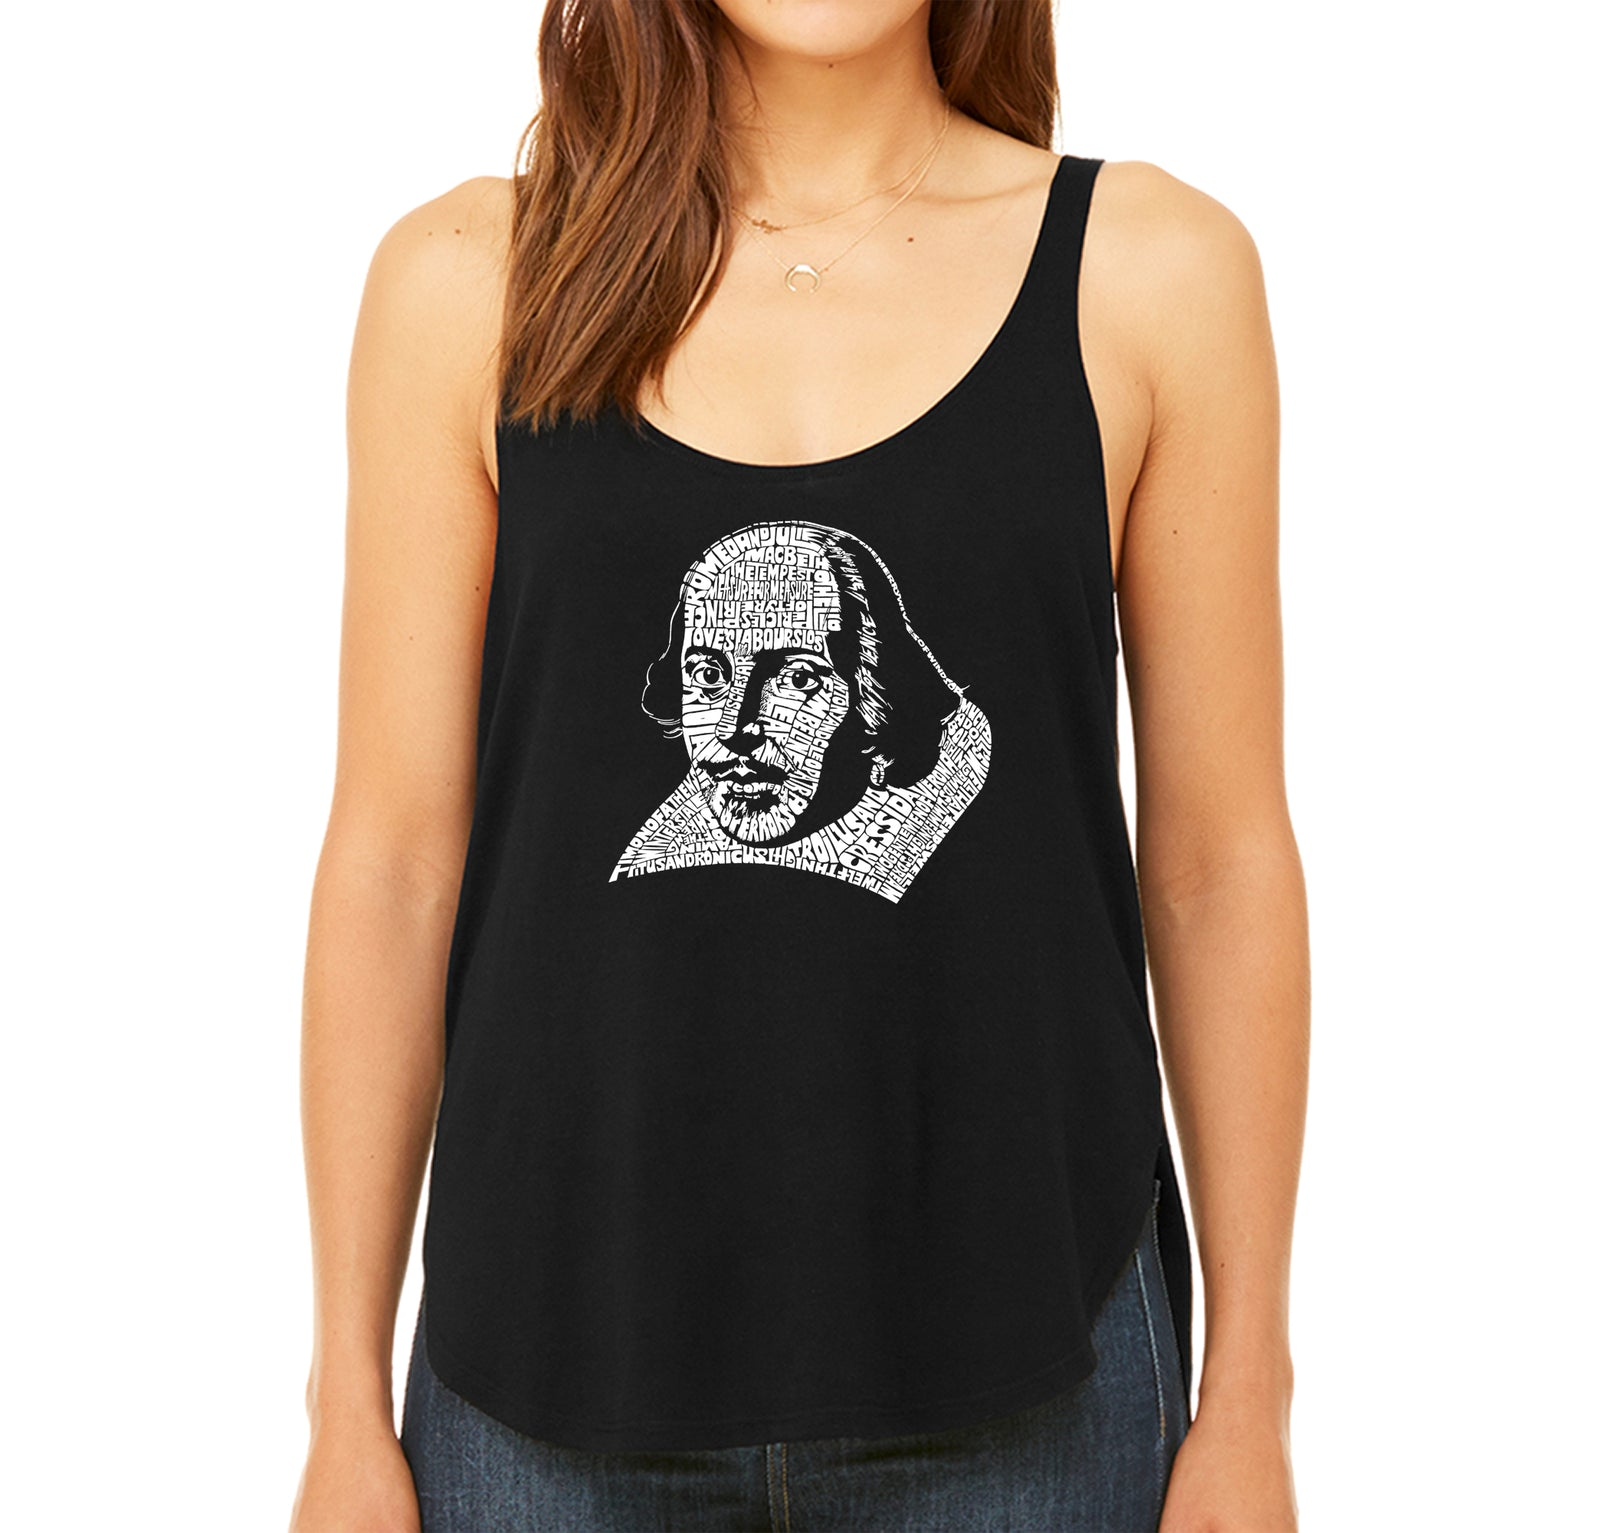 Women's Premium Word Art Flowy Tank Top - THE TITLES OF ALL OF WILLIAM SHAKESPEARE'S COMEDIES & TRAGEDIES